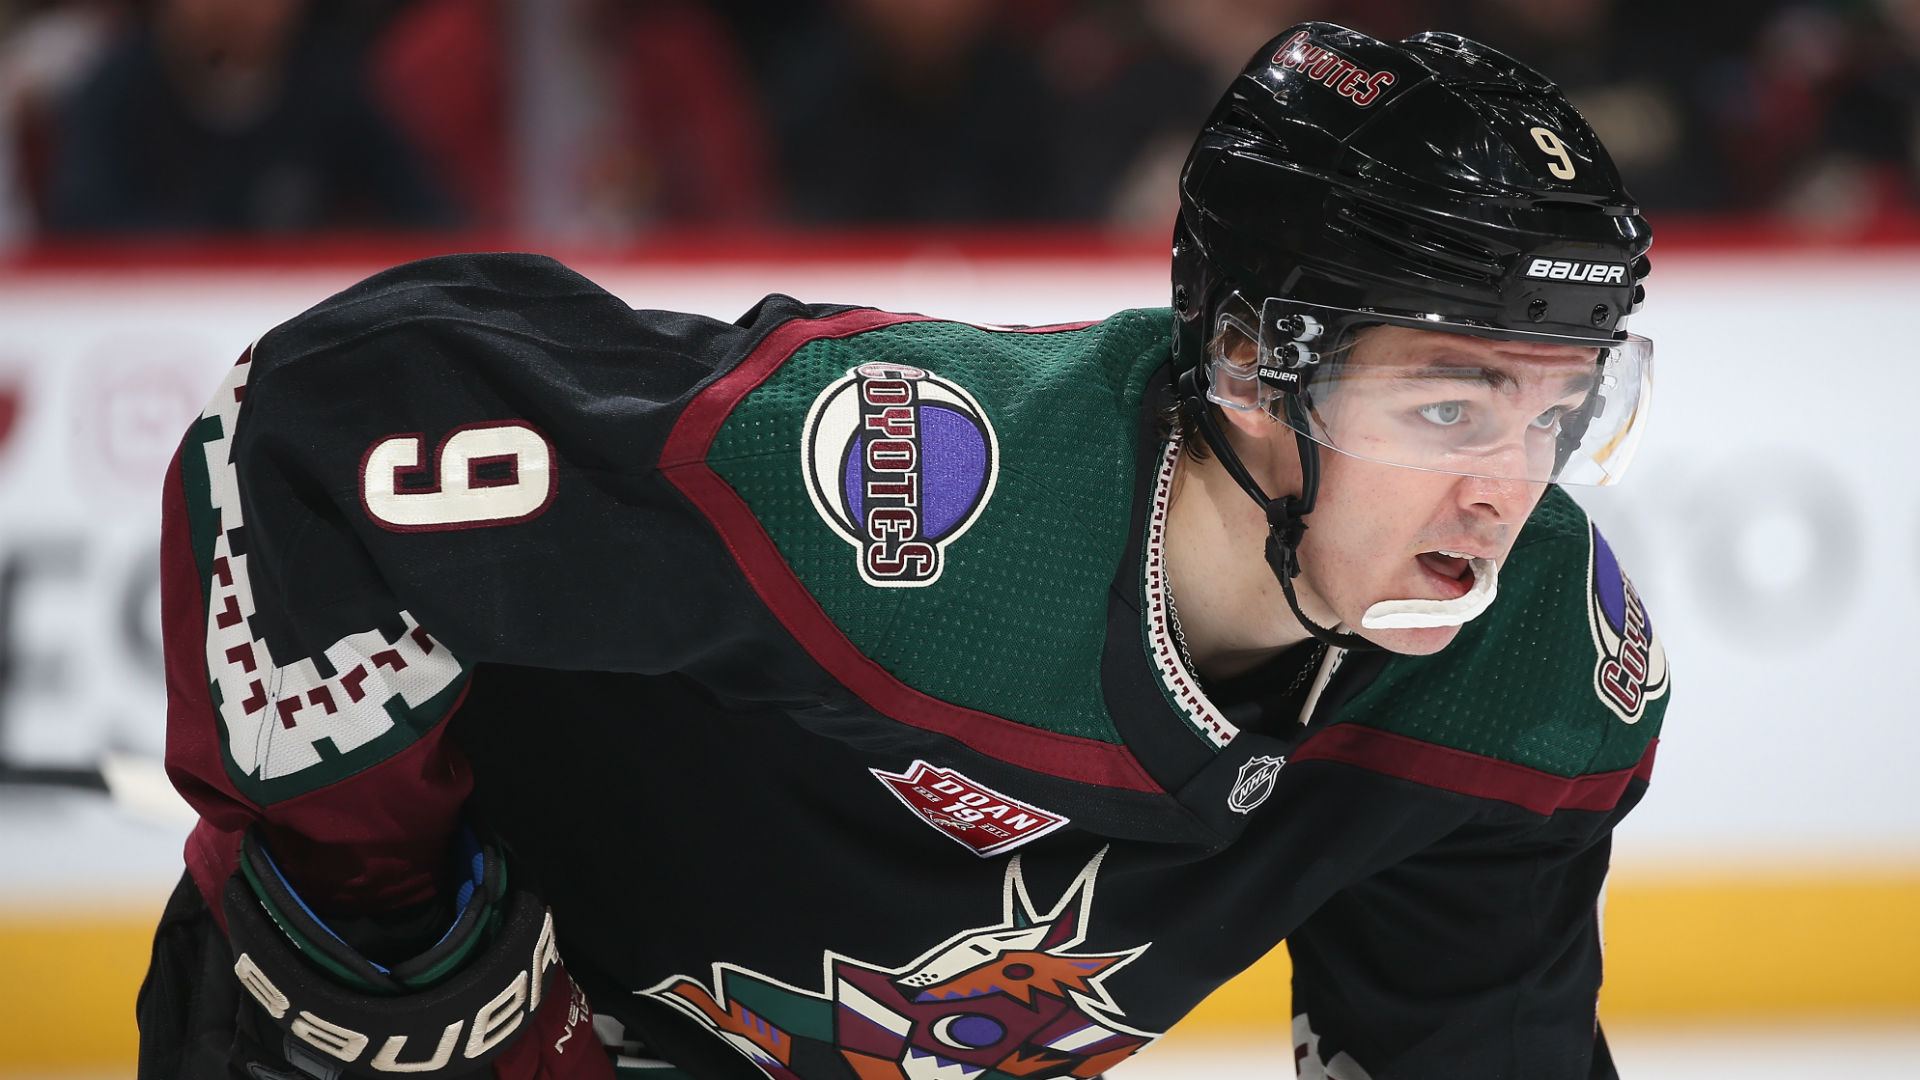 Clayton Keller, Coyotes agree to 8-year extension